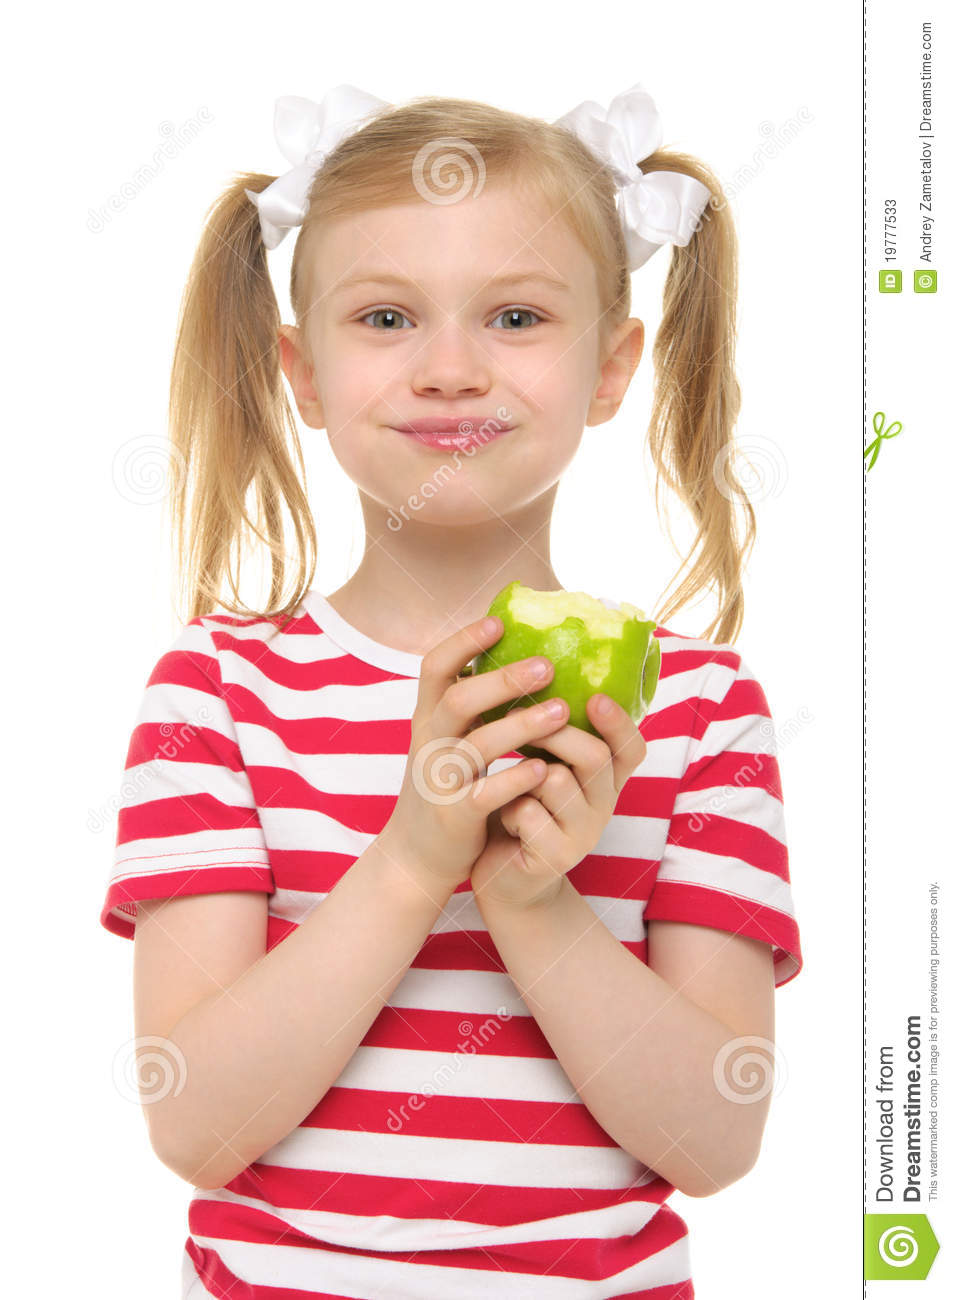 Girl eating green apple and smiling